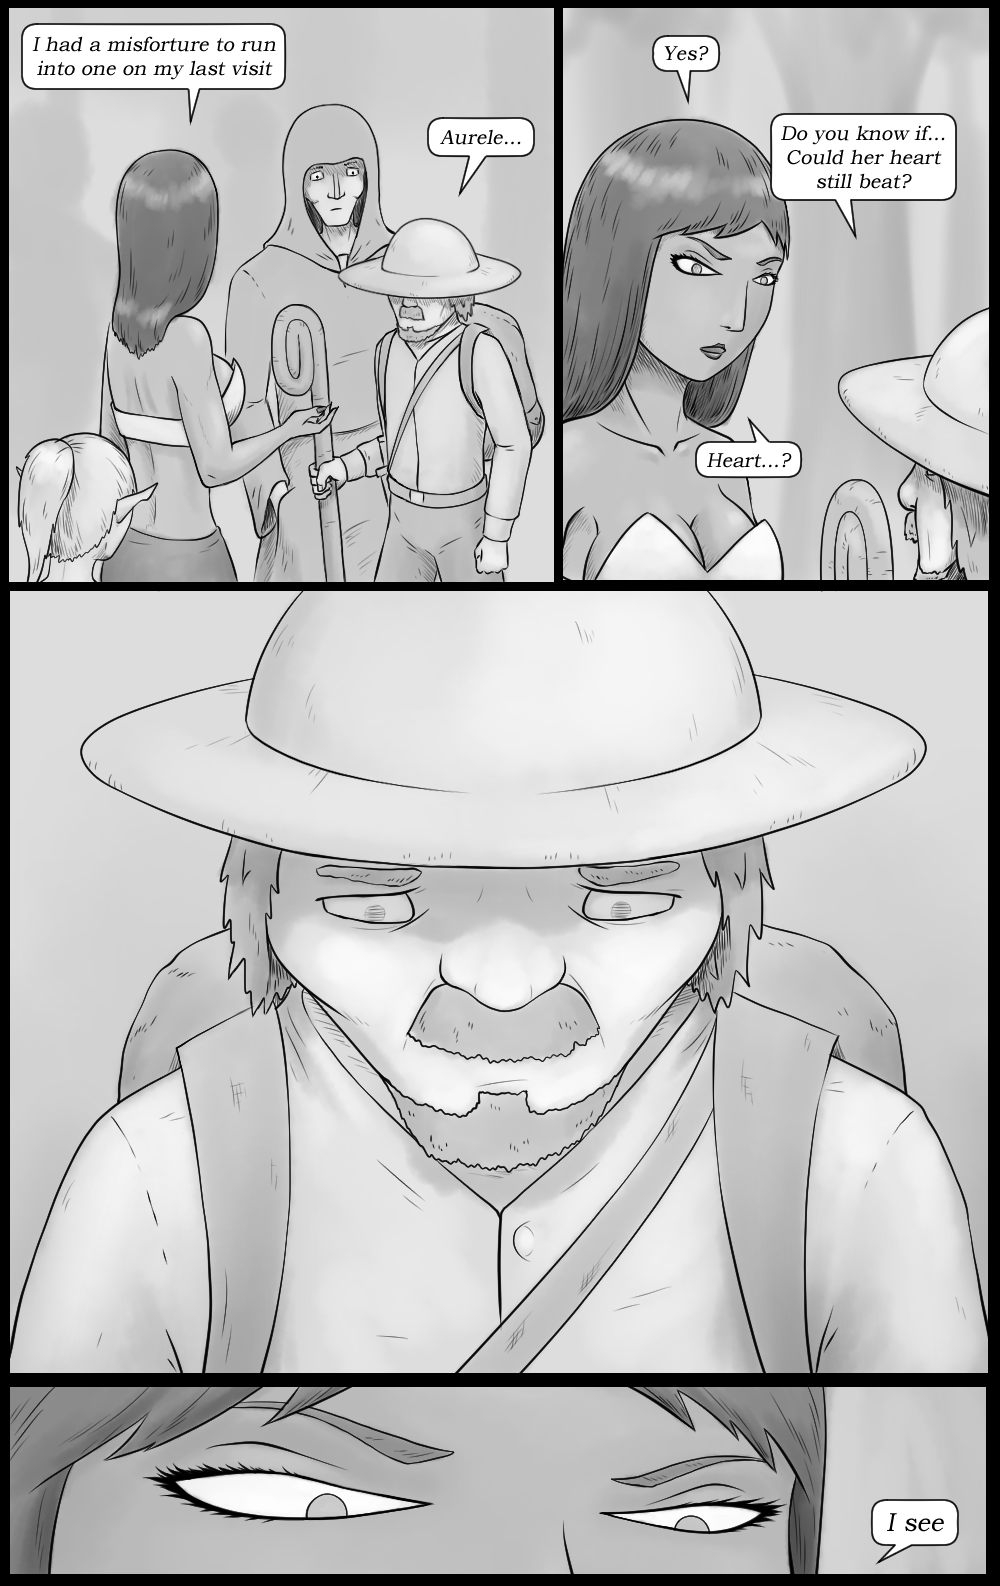 Page 35 - The heart question